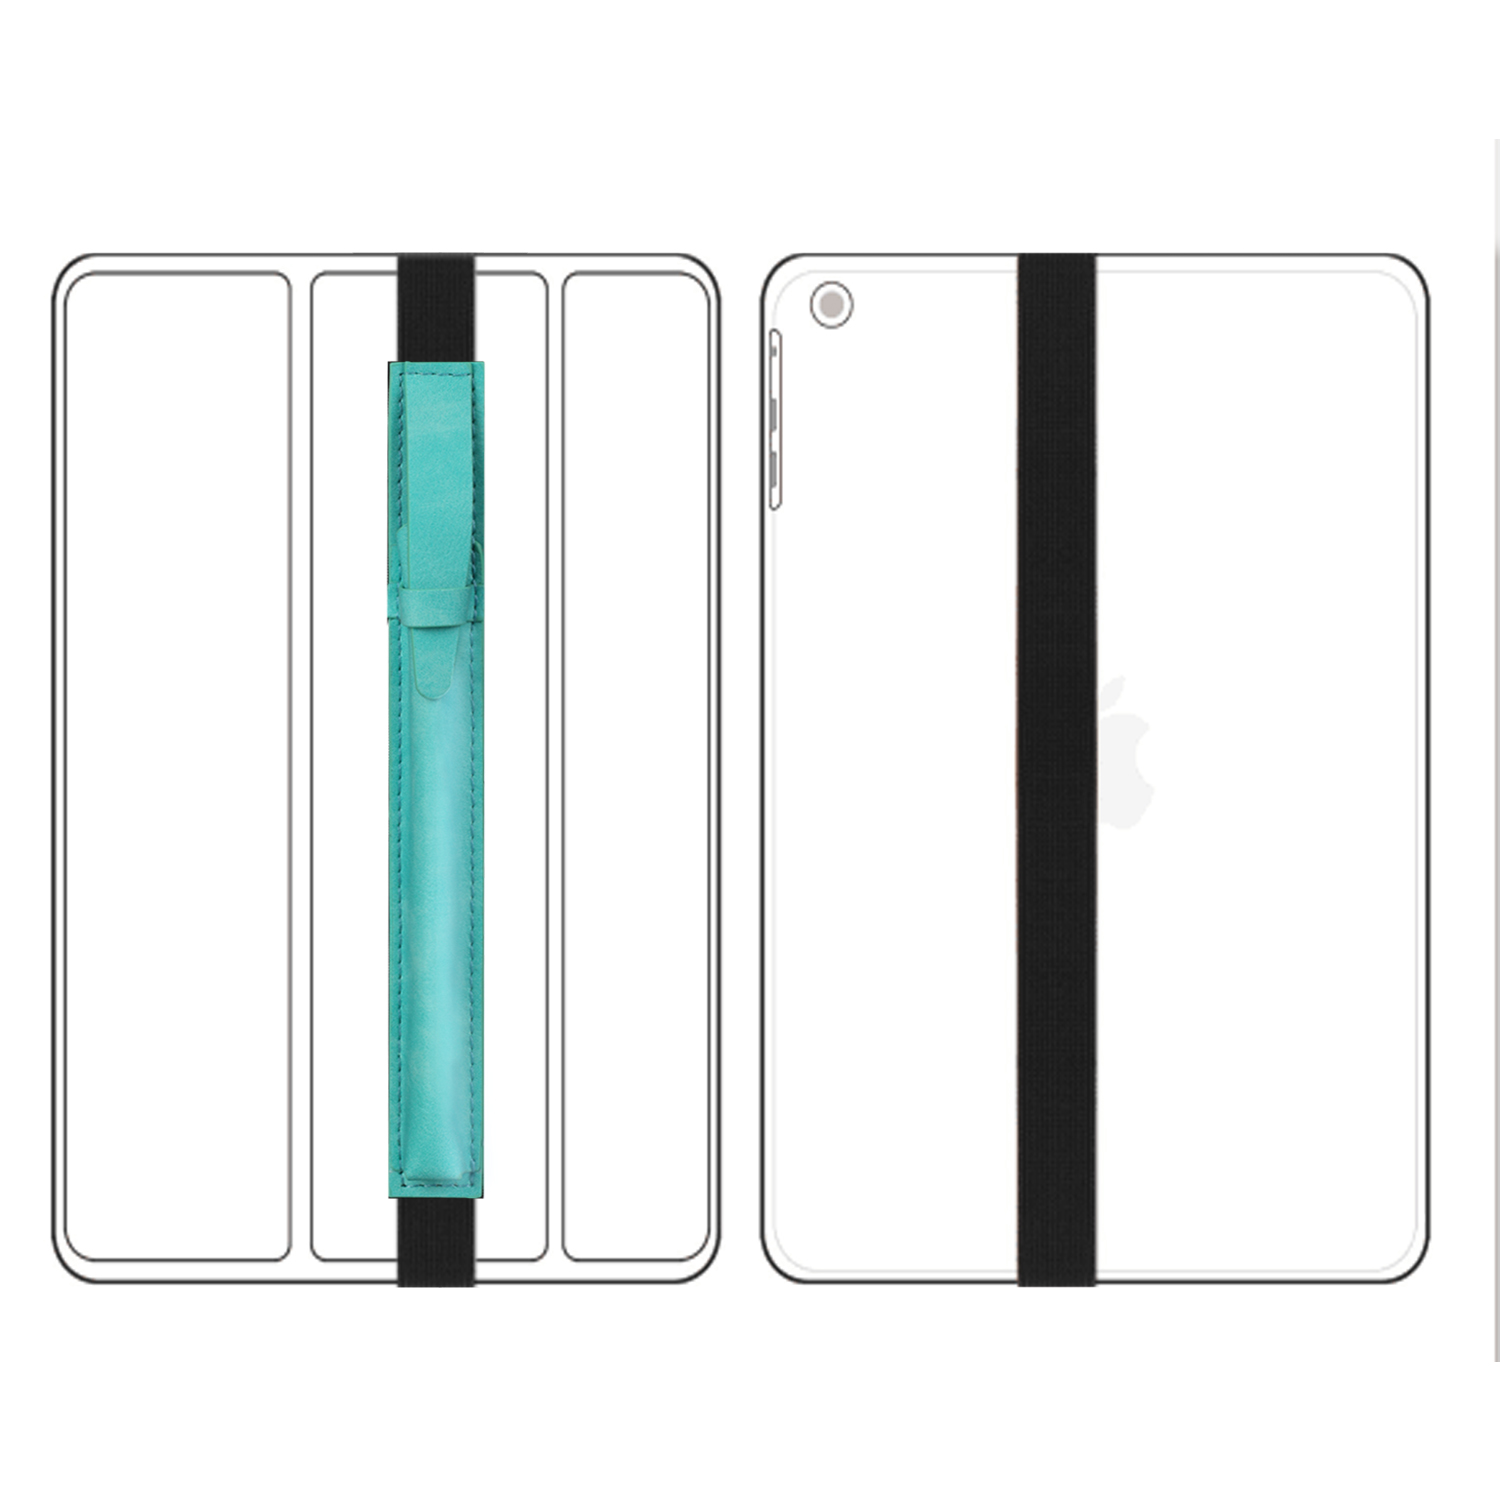 For-Apple-Pencil-Case-Leather-iPad-Pen-Cover-Sleeve-Pouch-Bag-Holder-Protector thumbnail 31